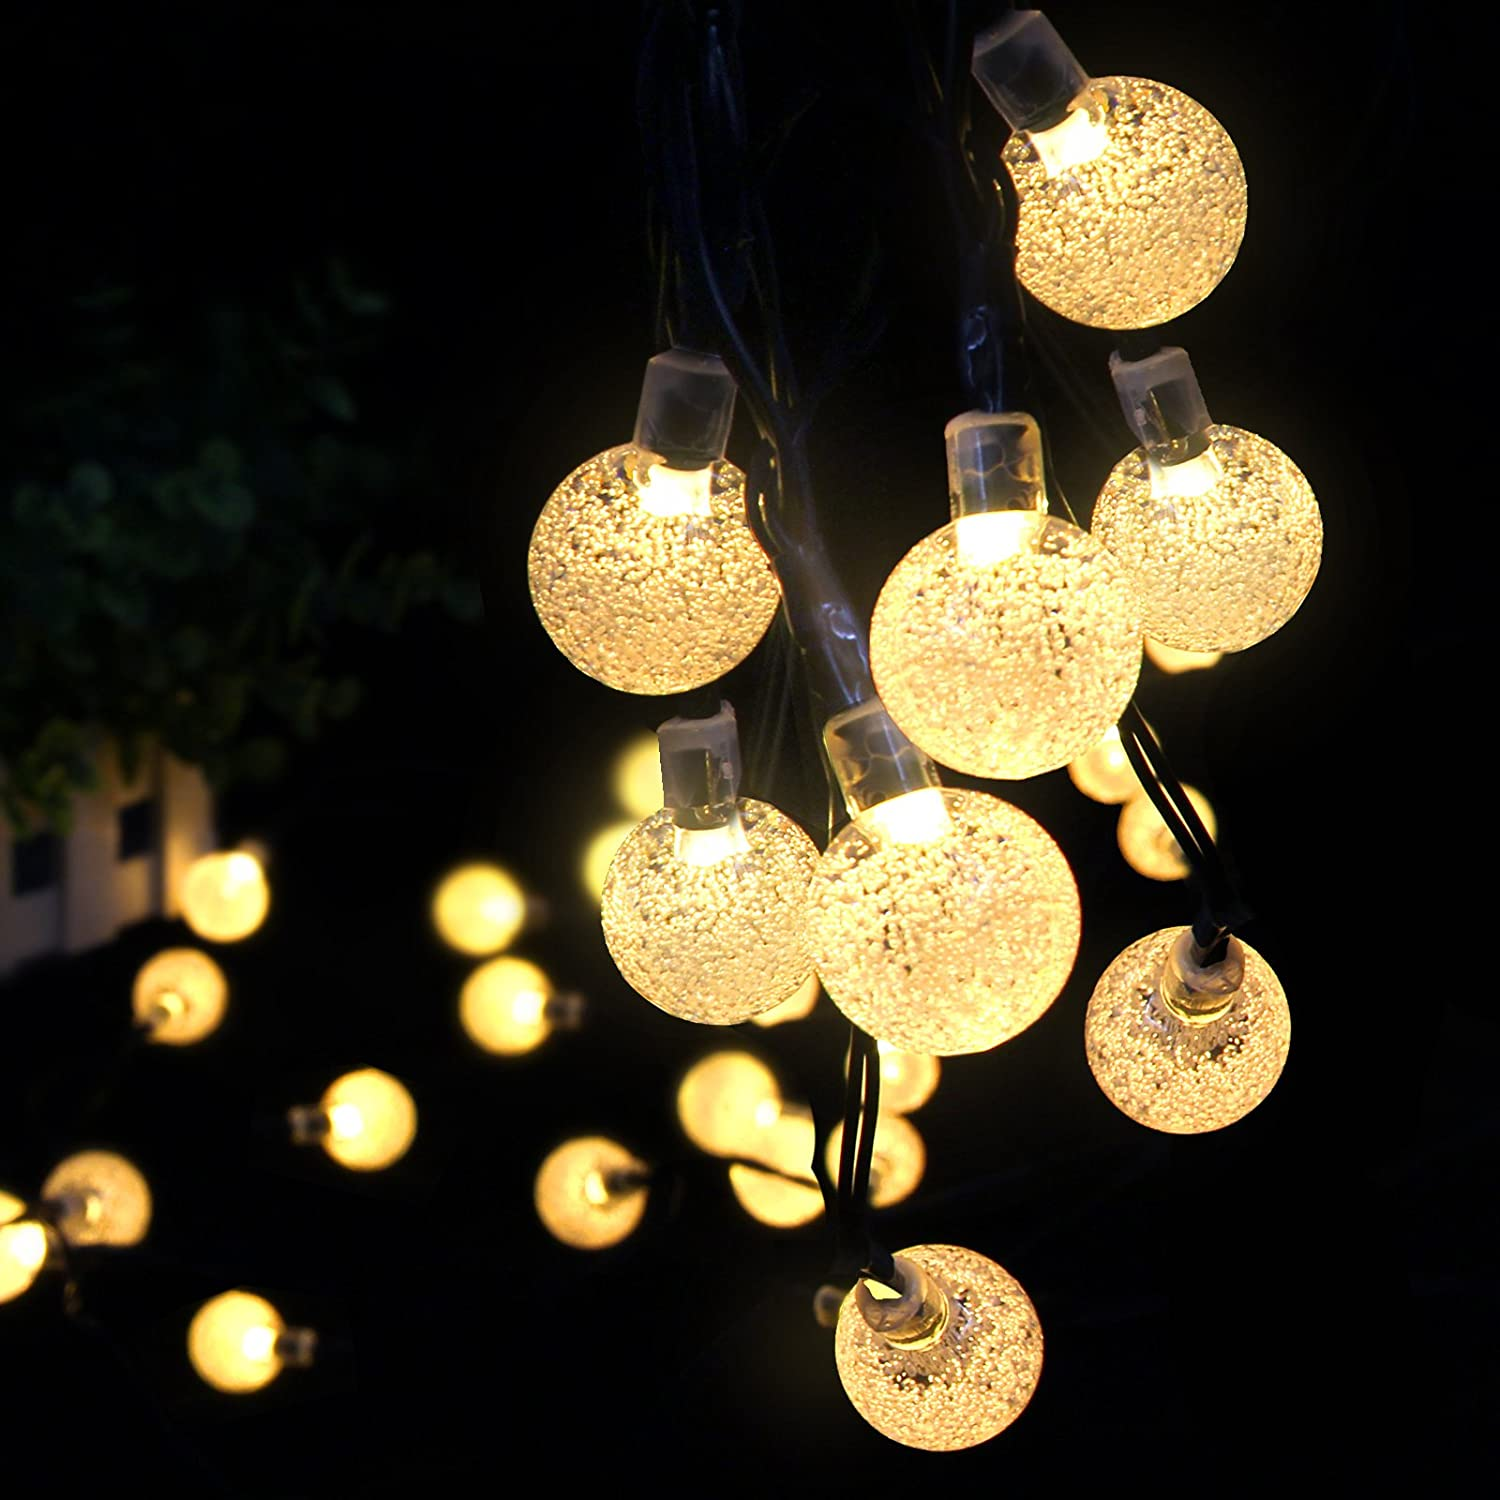 Solar outdoor string lights ascher 30 led fairy light warm white solar outdoor string lights ascher 30 led fairy light warm white crystal ball christmas globe lights for outdoor yard garden homegarden pathchrismas mozeypictures